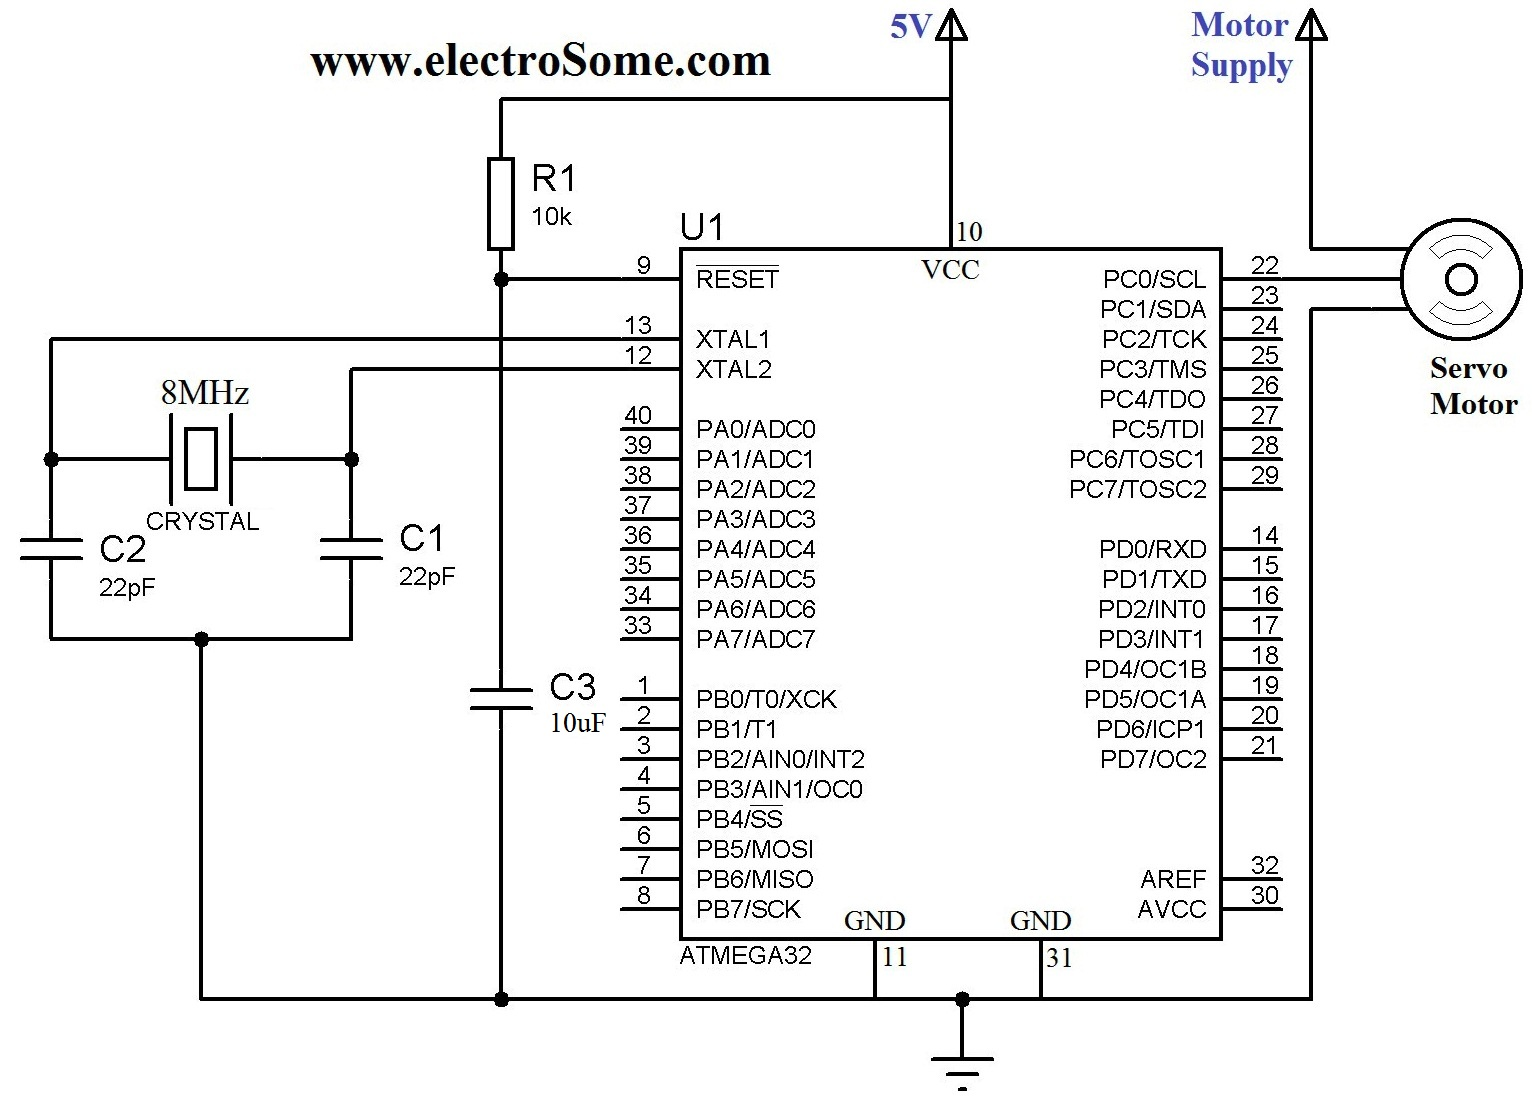 Interfacing Servo Motor With Atmega32 Atmel Avr Microcontroller Circuit Diagram Furthermore Variable Frequency Drive